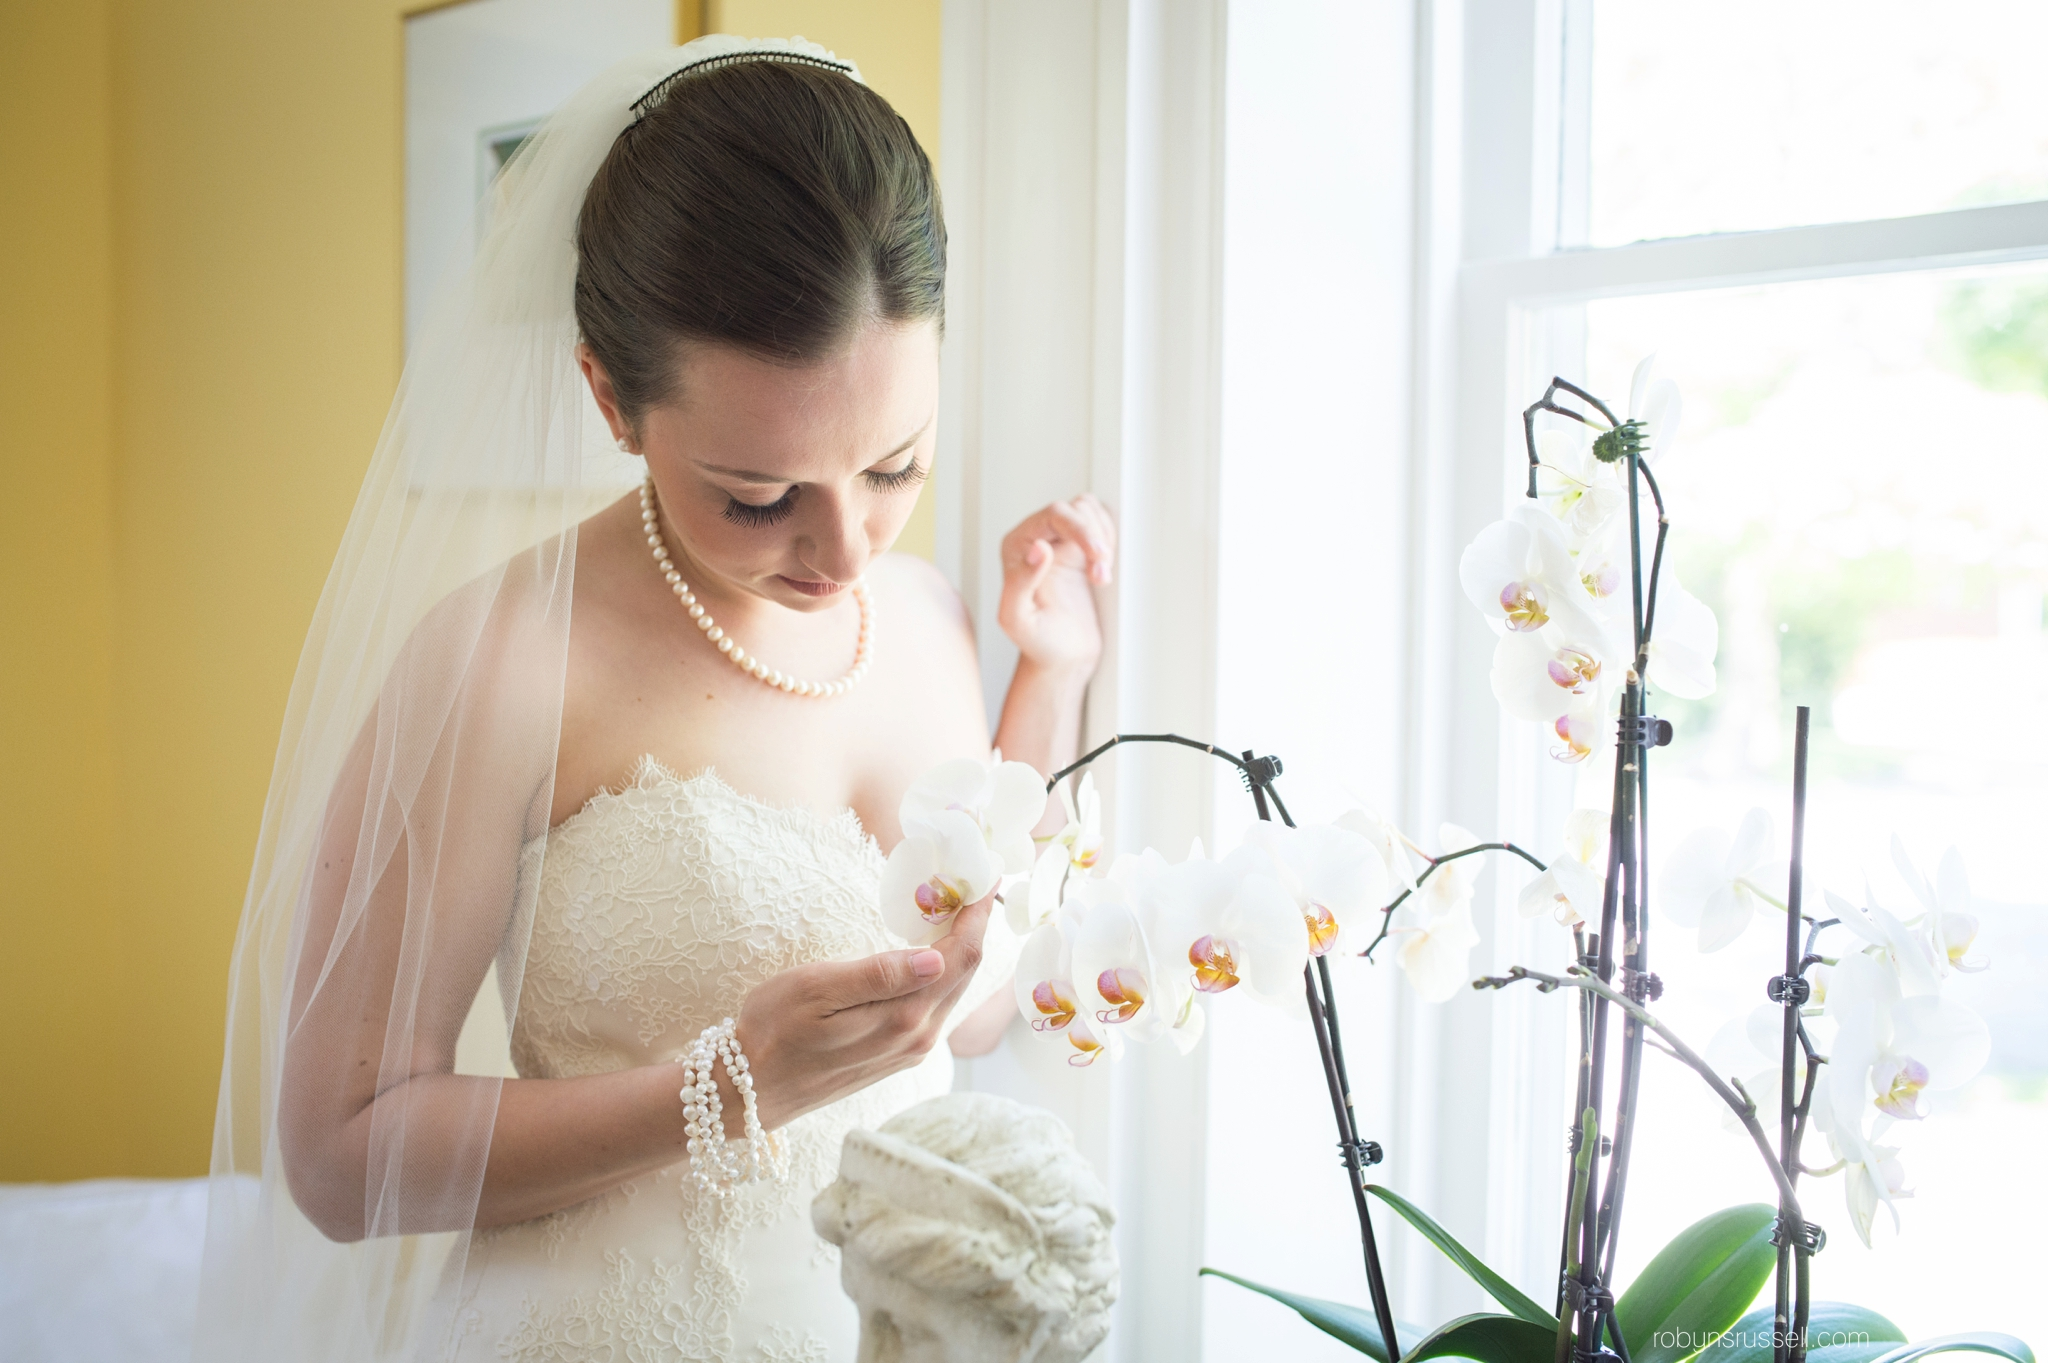 11-quiet-moment-for-bride-before-ceremony.jpg